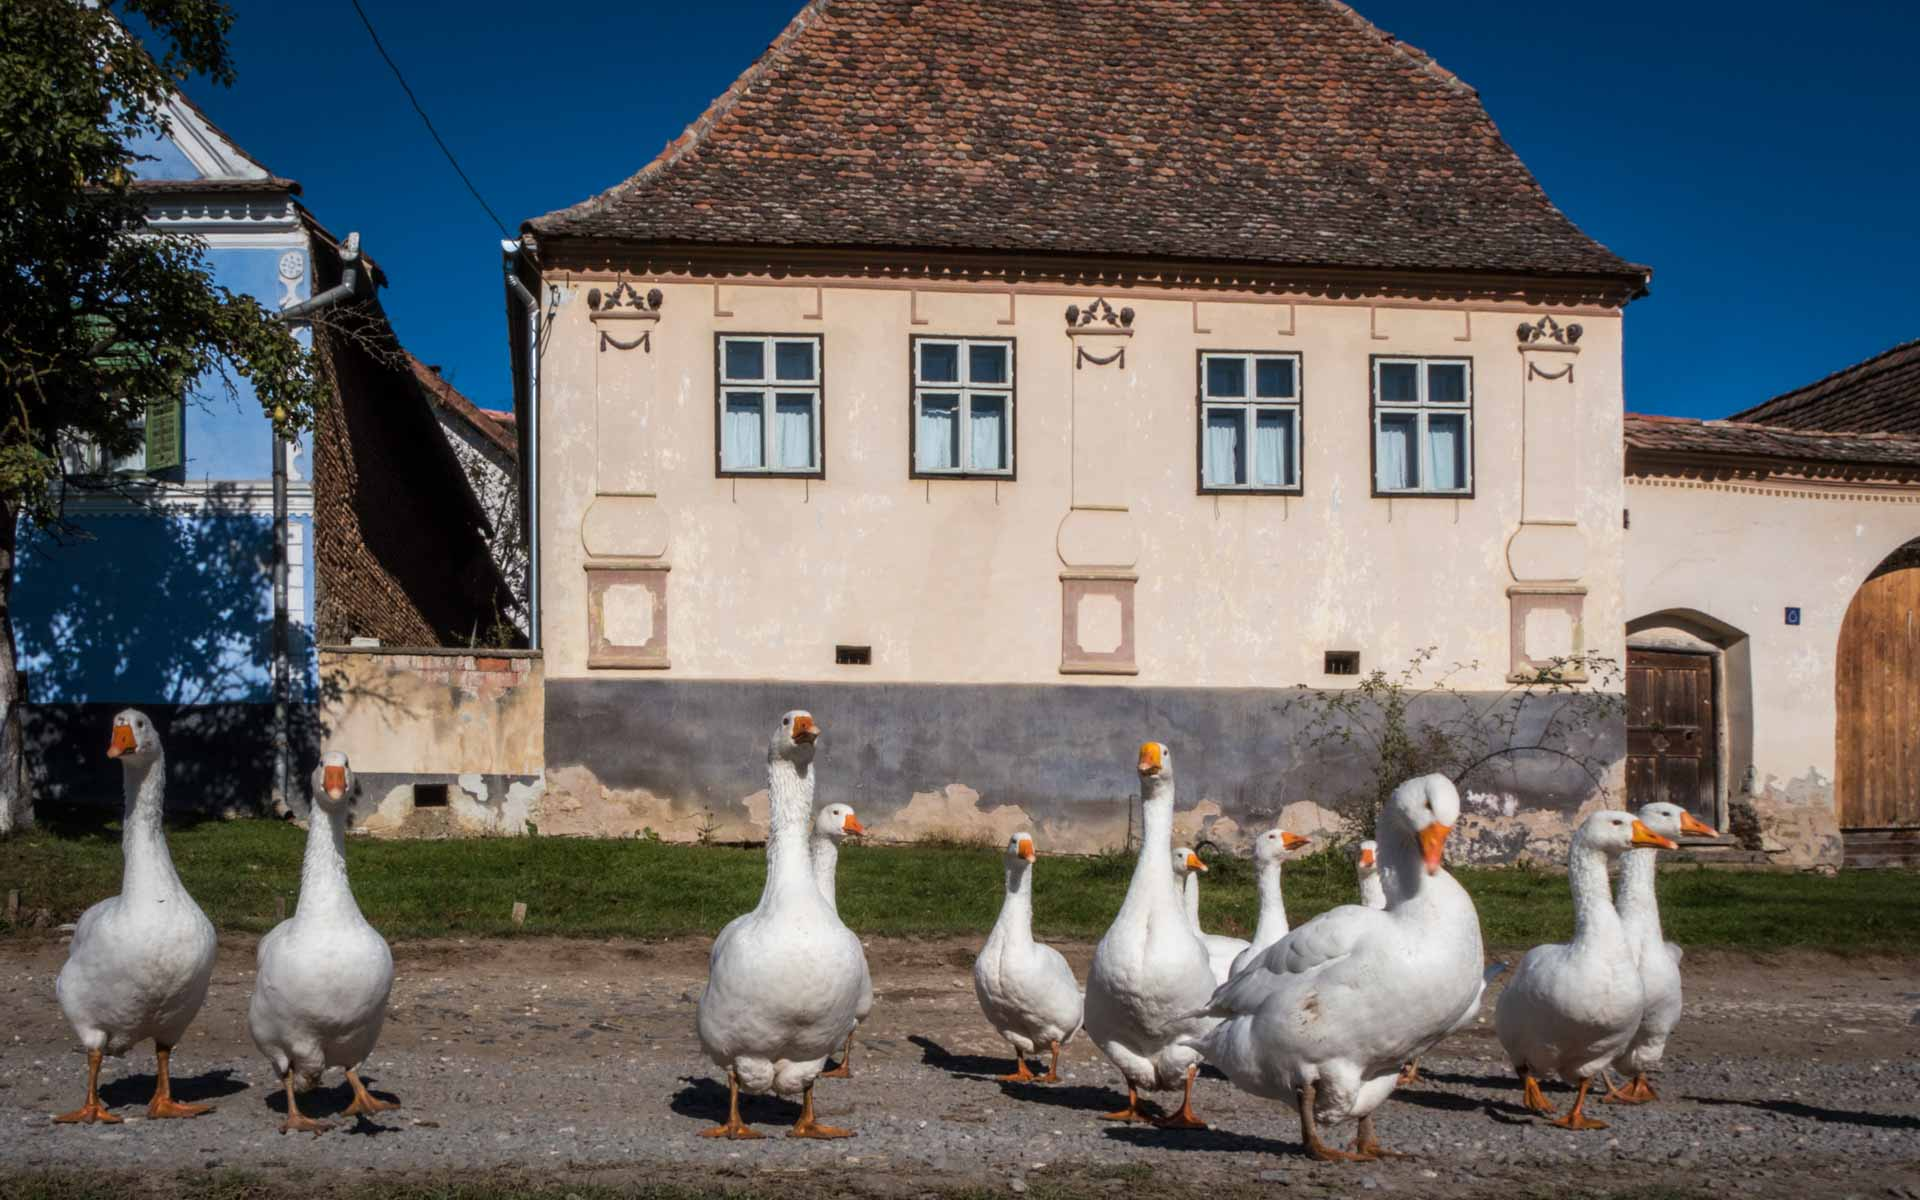 Ducks roaming the streets of Viscri